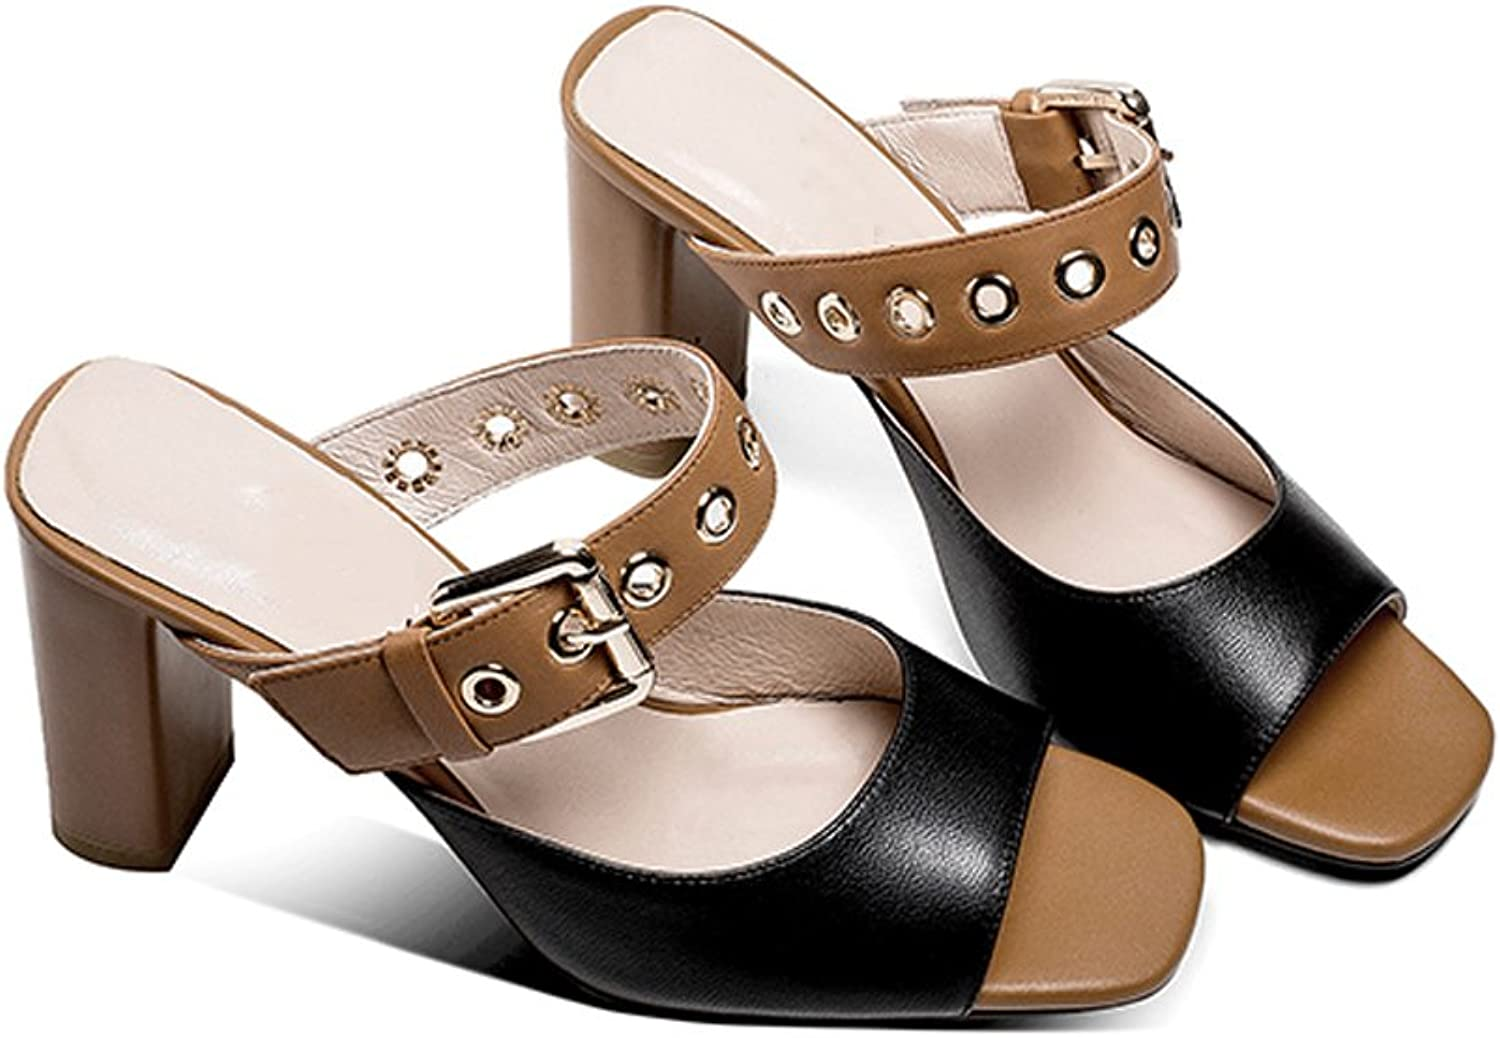 YUBIN Full Leather shoes Retro Sandals Belt Buckle Sexy Open-Toed Sandals and Slippers Women Wear (color   Black, Size   35)